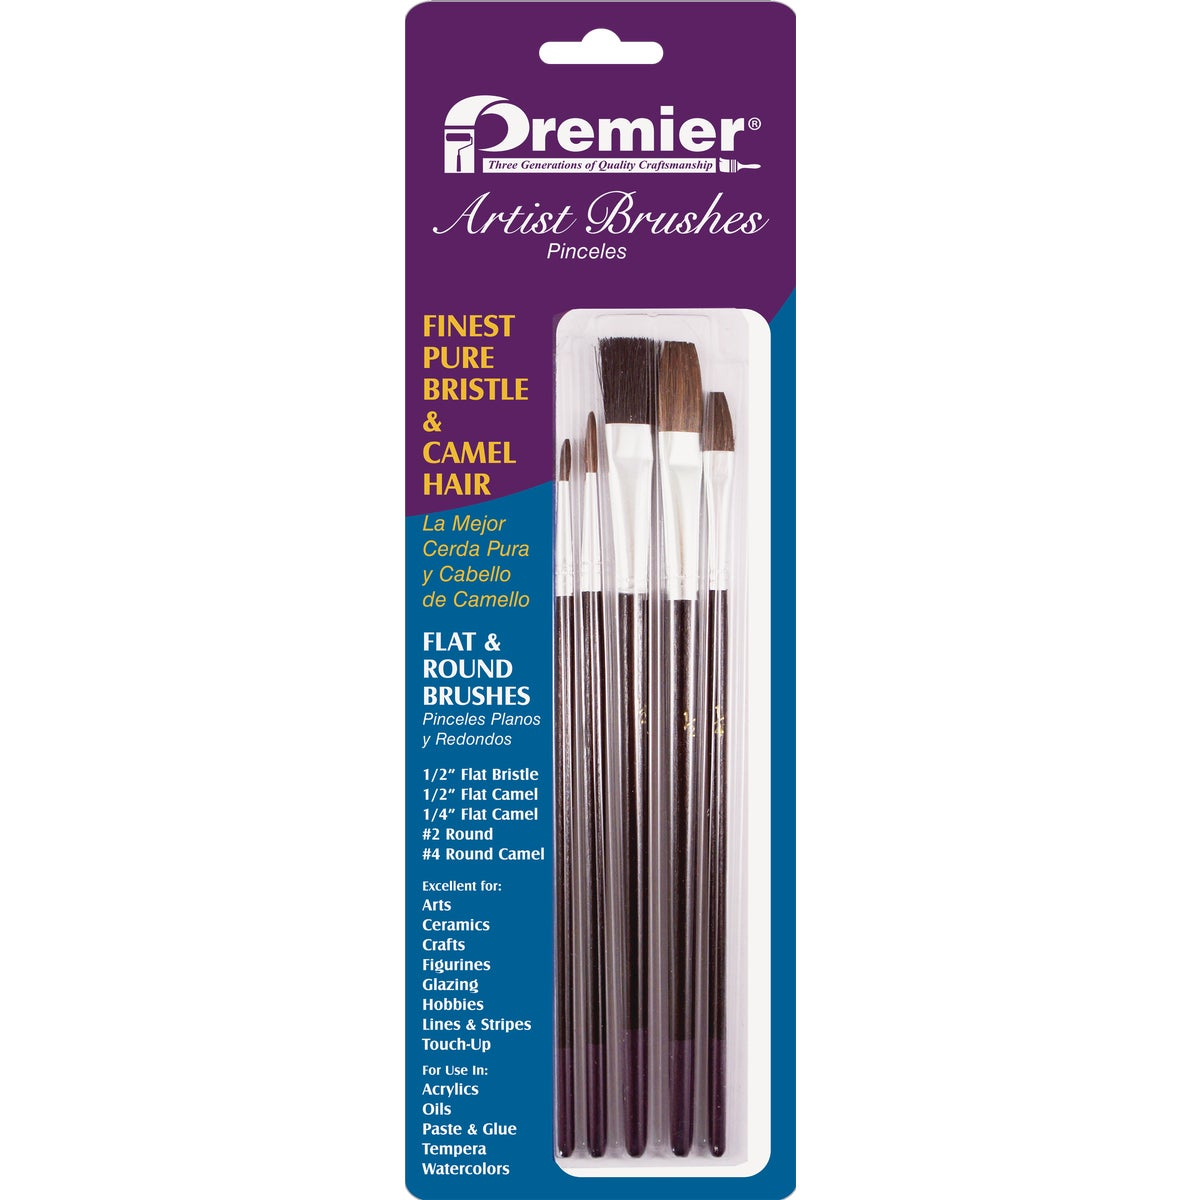 5PC CAMEL HAIR ART BRUSH - AR10105 by Premier Paint Roller